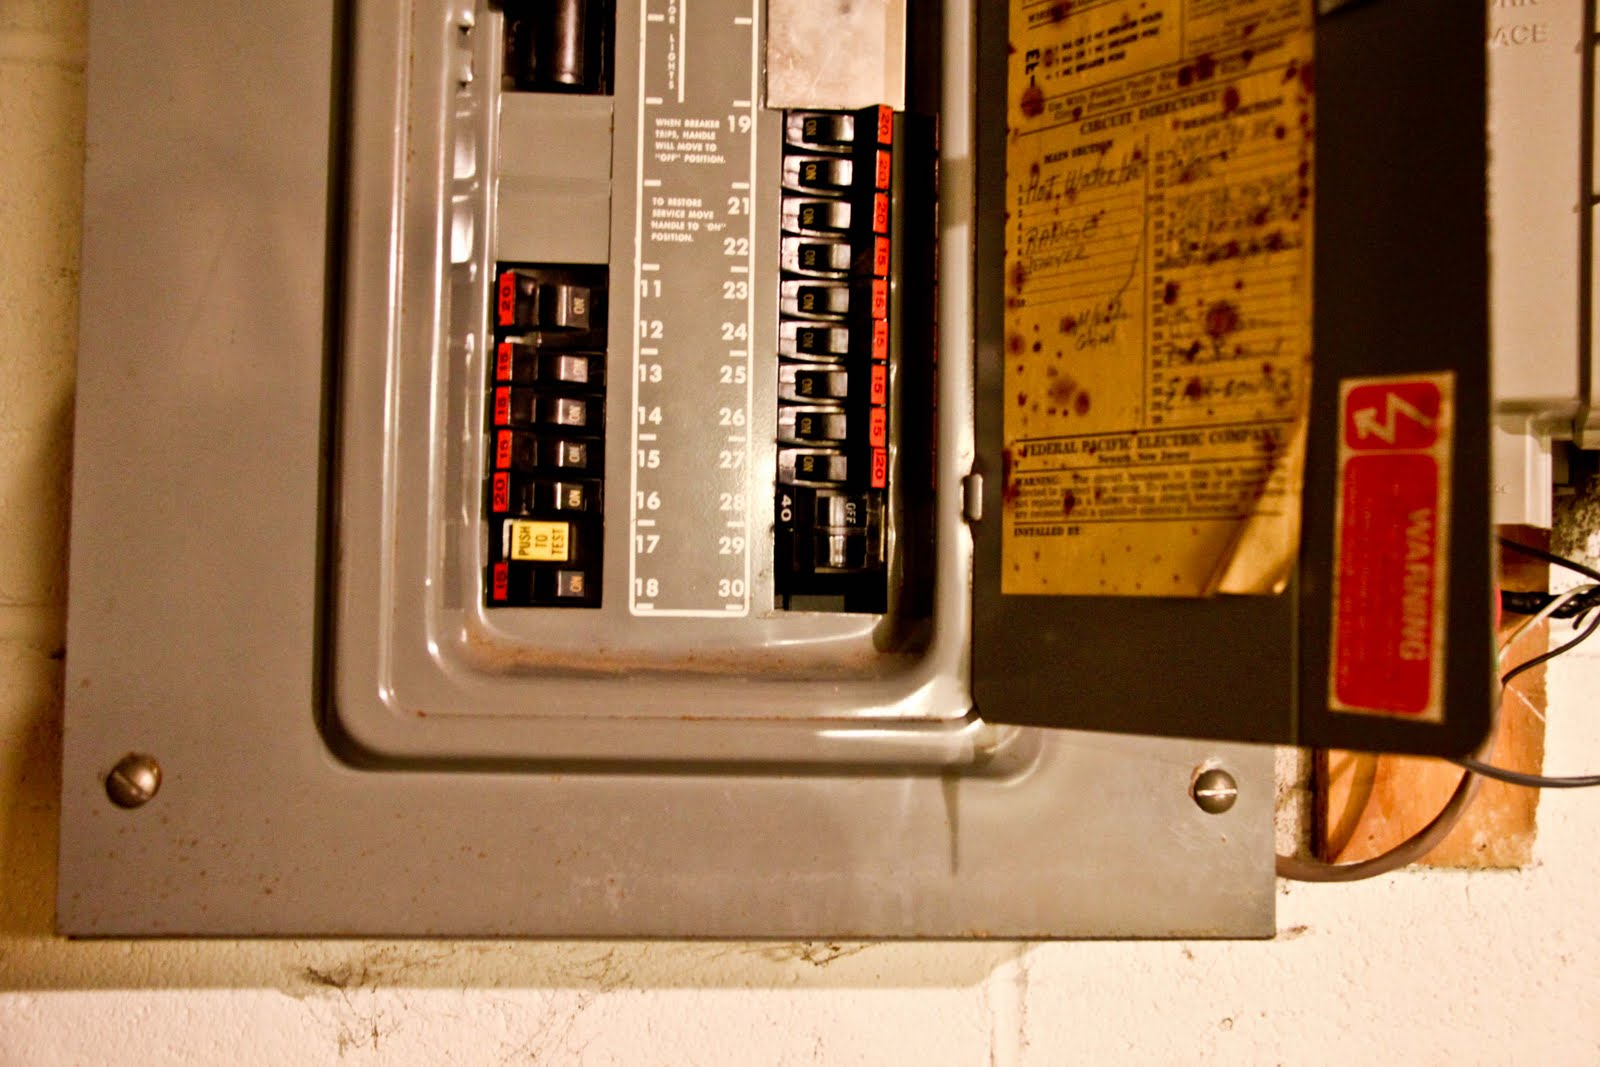 IMG_4614 replacing fuse on central ac unit work space how to reset fuse box in house at mifinder.co